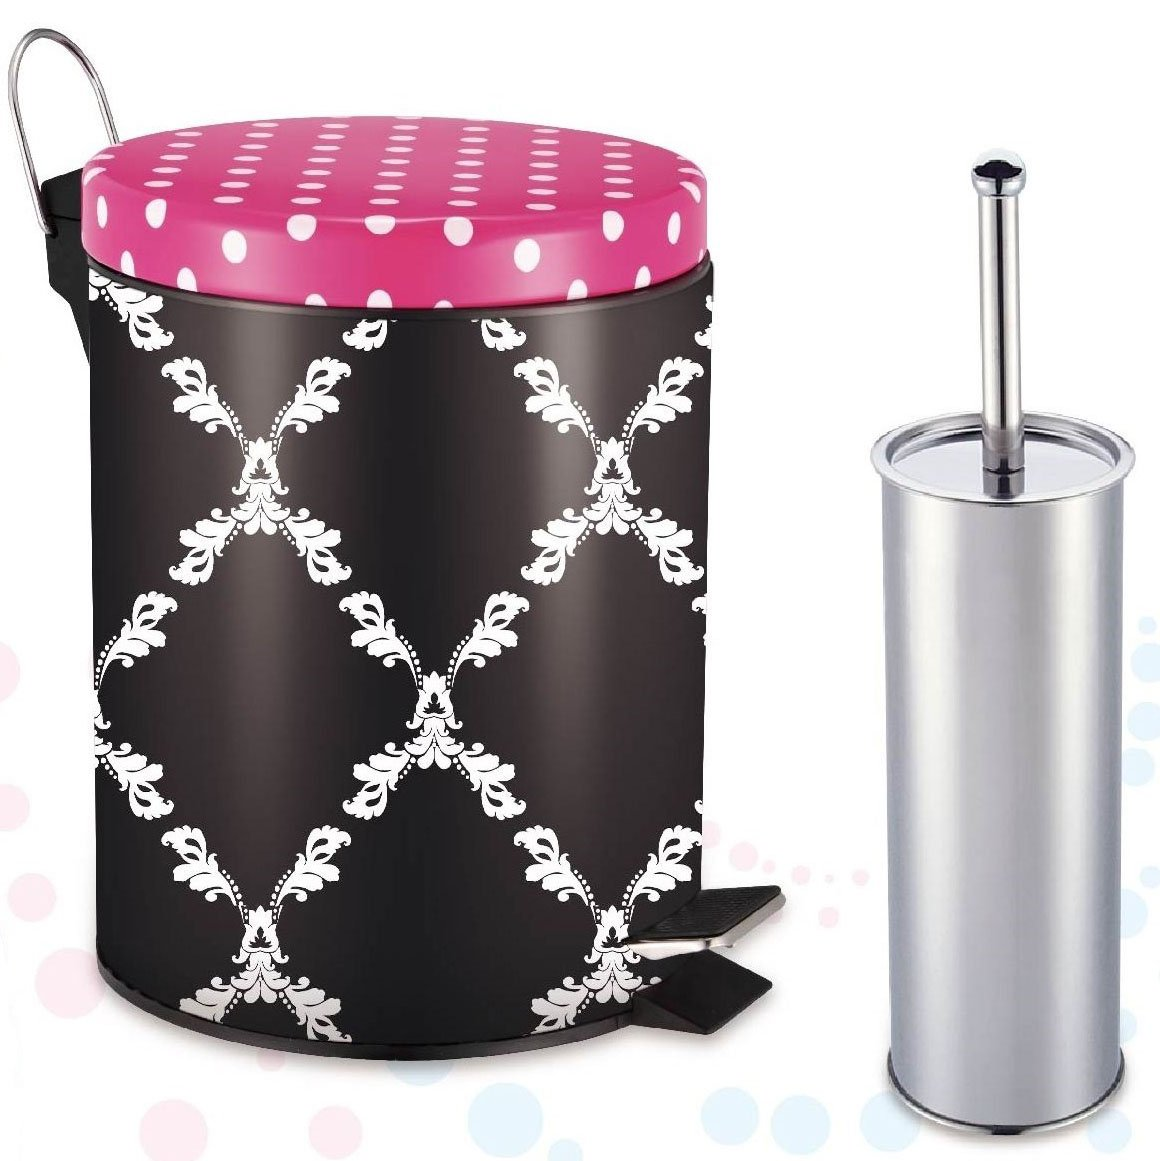 2 pc Step On Graphic Design Pattern Printed Round Metal Trash Bin Can (5L) with Toilet Brush (Mystic Trellis)